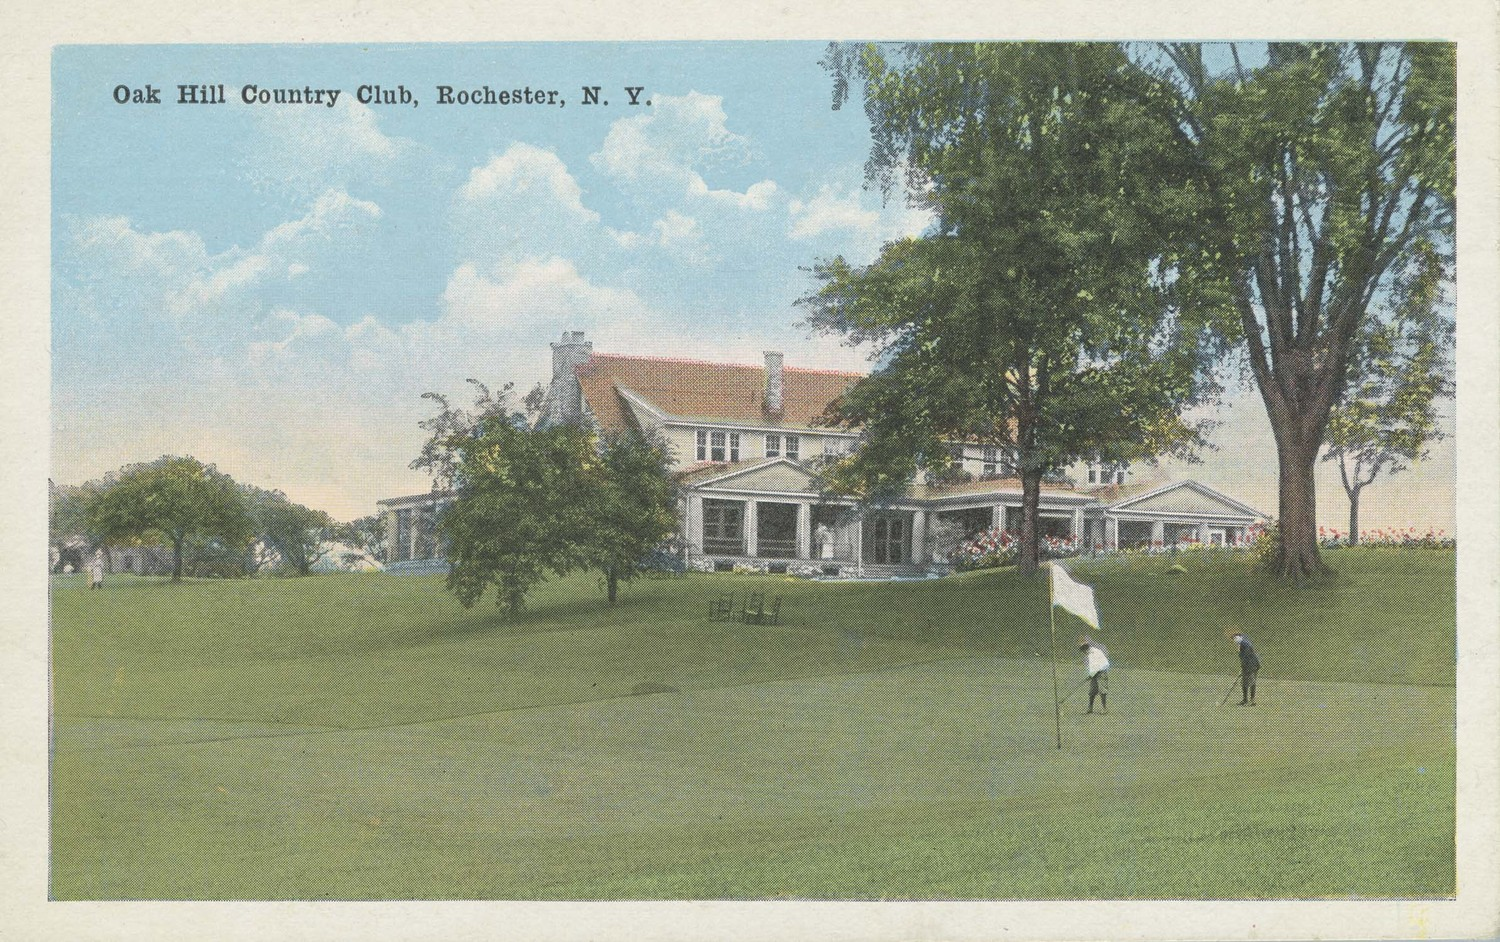 Oak Hill Country Club, Rochester, N.Y.